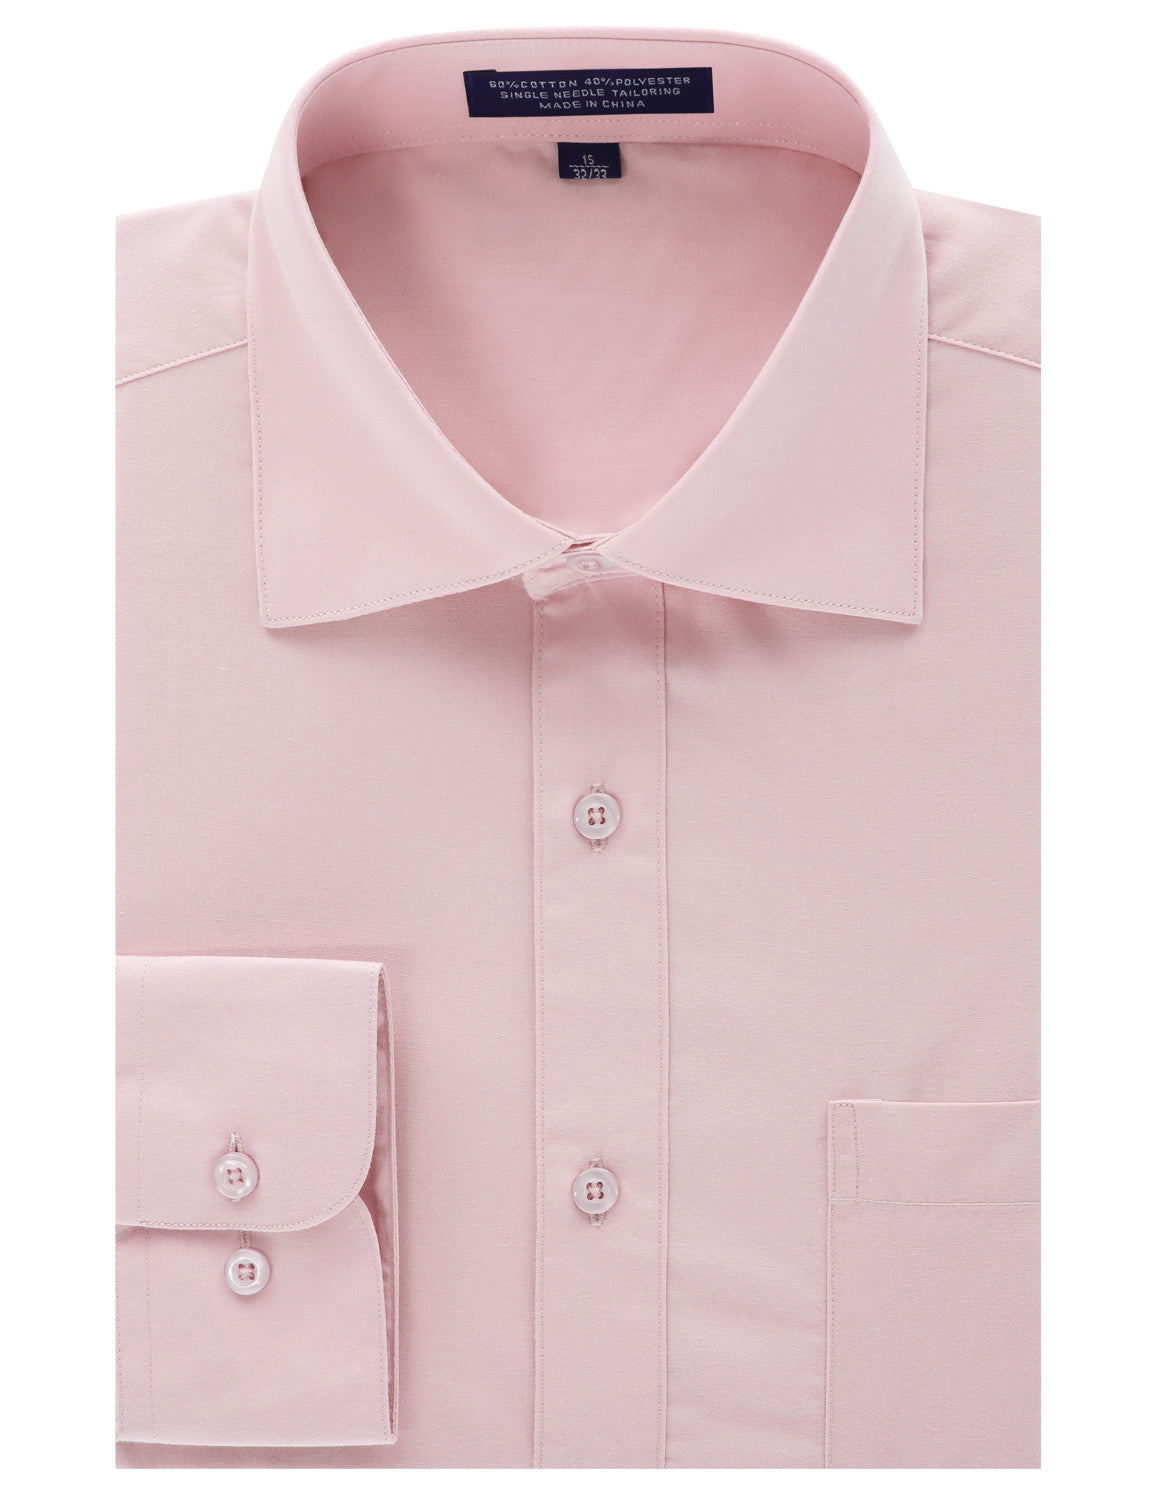 PINK Regular Fit Dress Shirt w/ Reversible Cuff (Big & Tall Available)- MONDAYSUIT